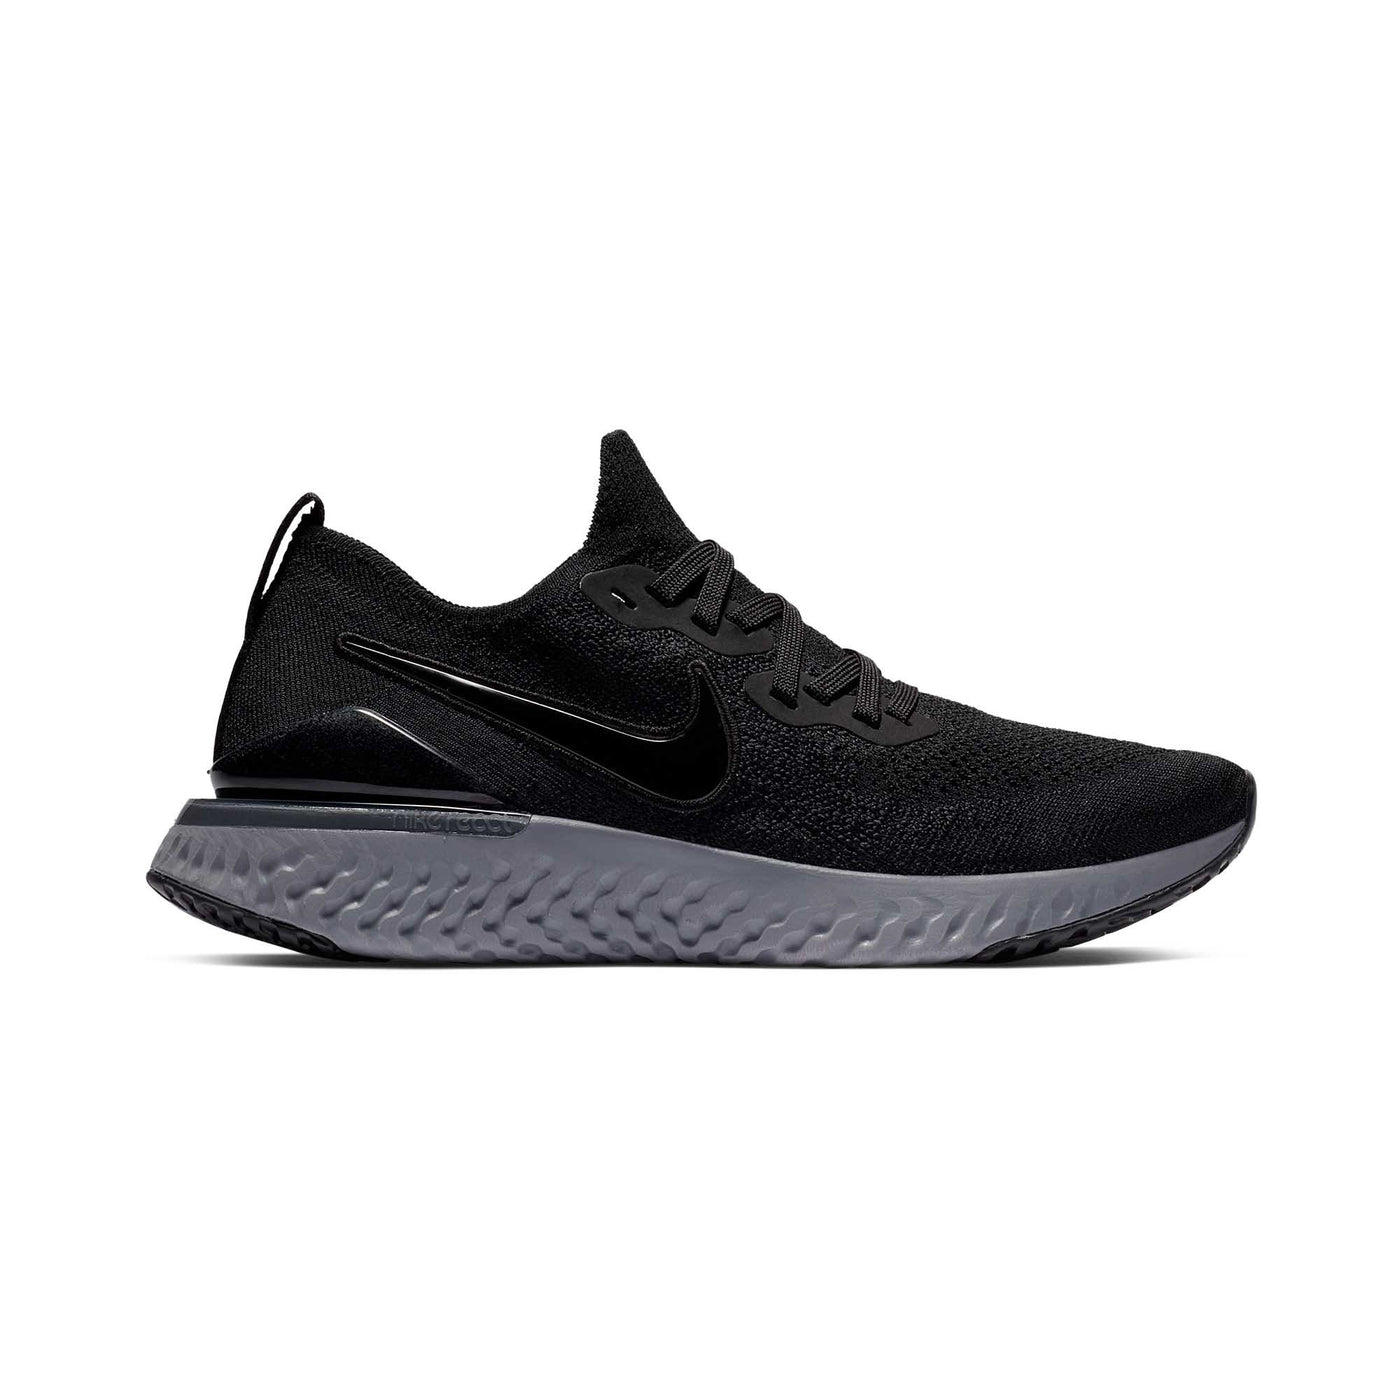 d9edc66f54db Women Epic React Flyknit 2 Running Shoes